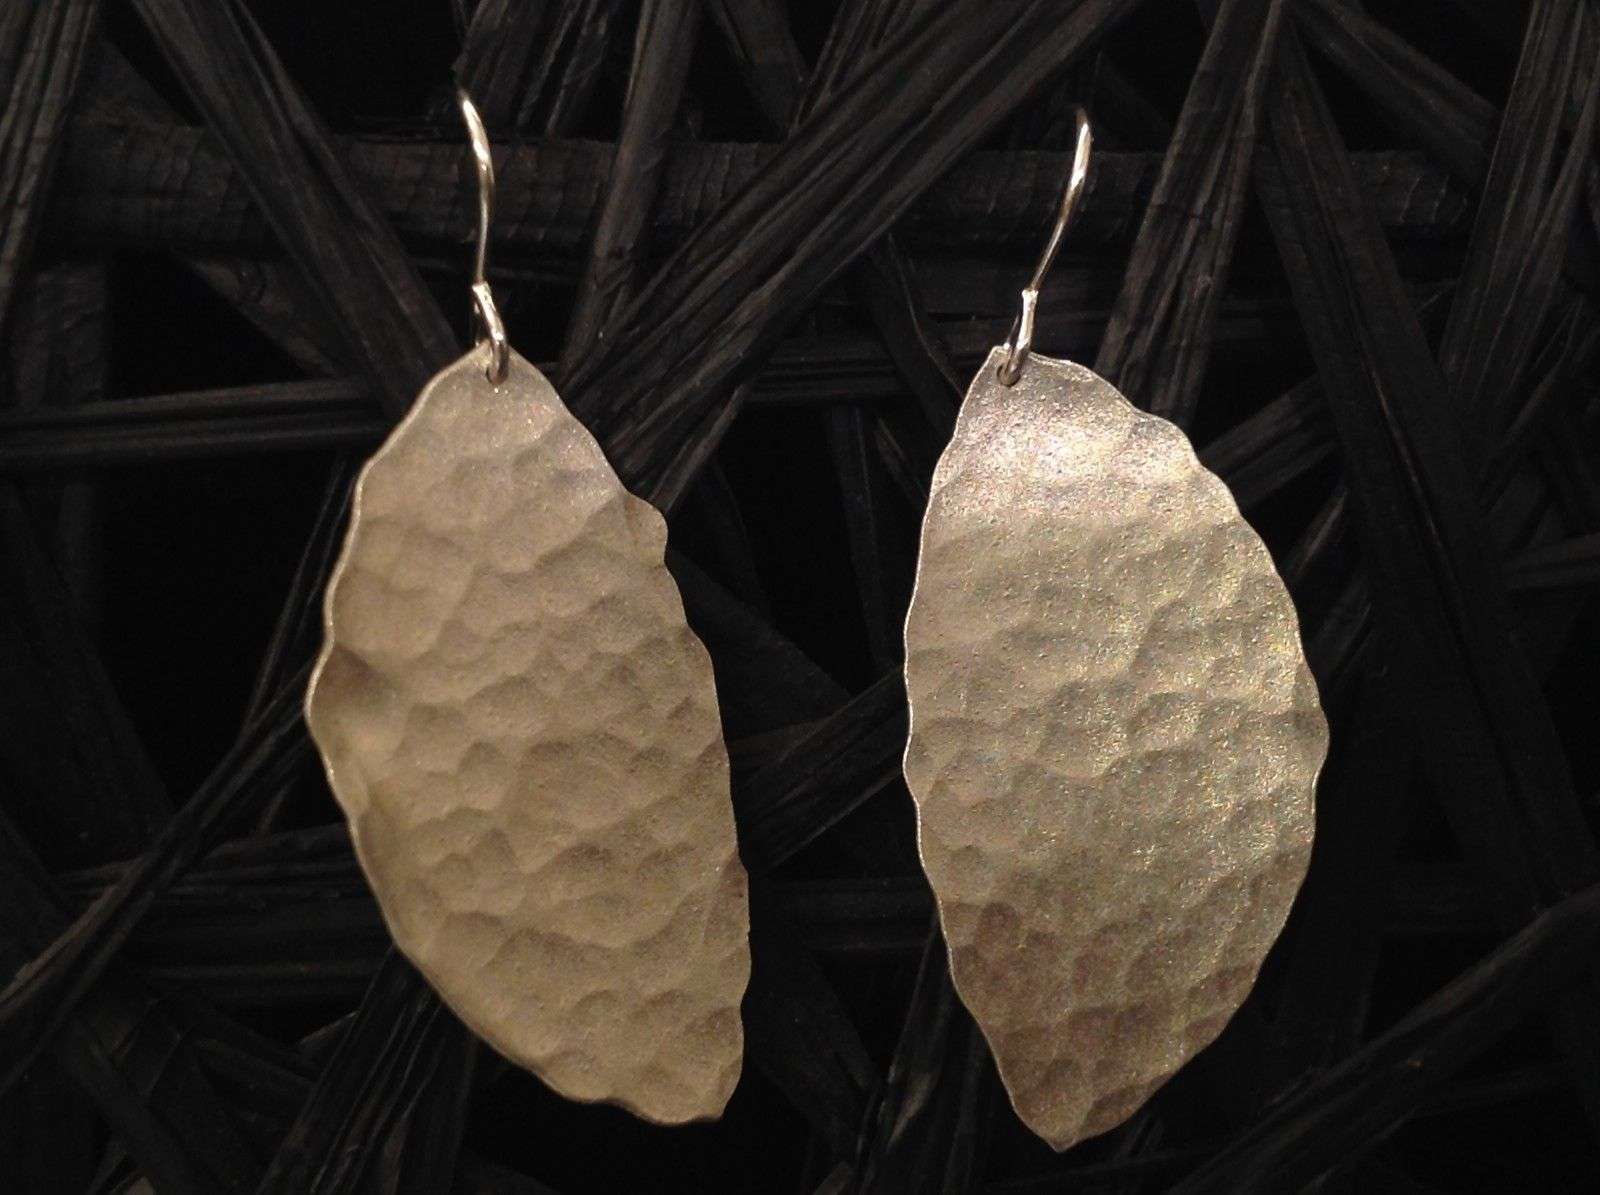 Zina Kao Sterling Silver Handmade Hammered Leaf Earrings Made in California